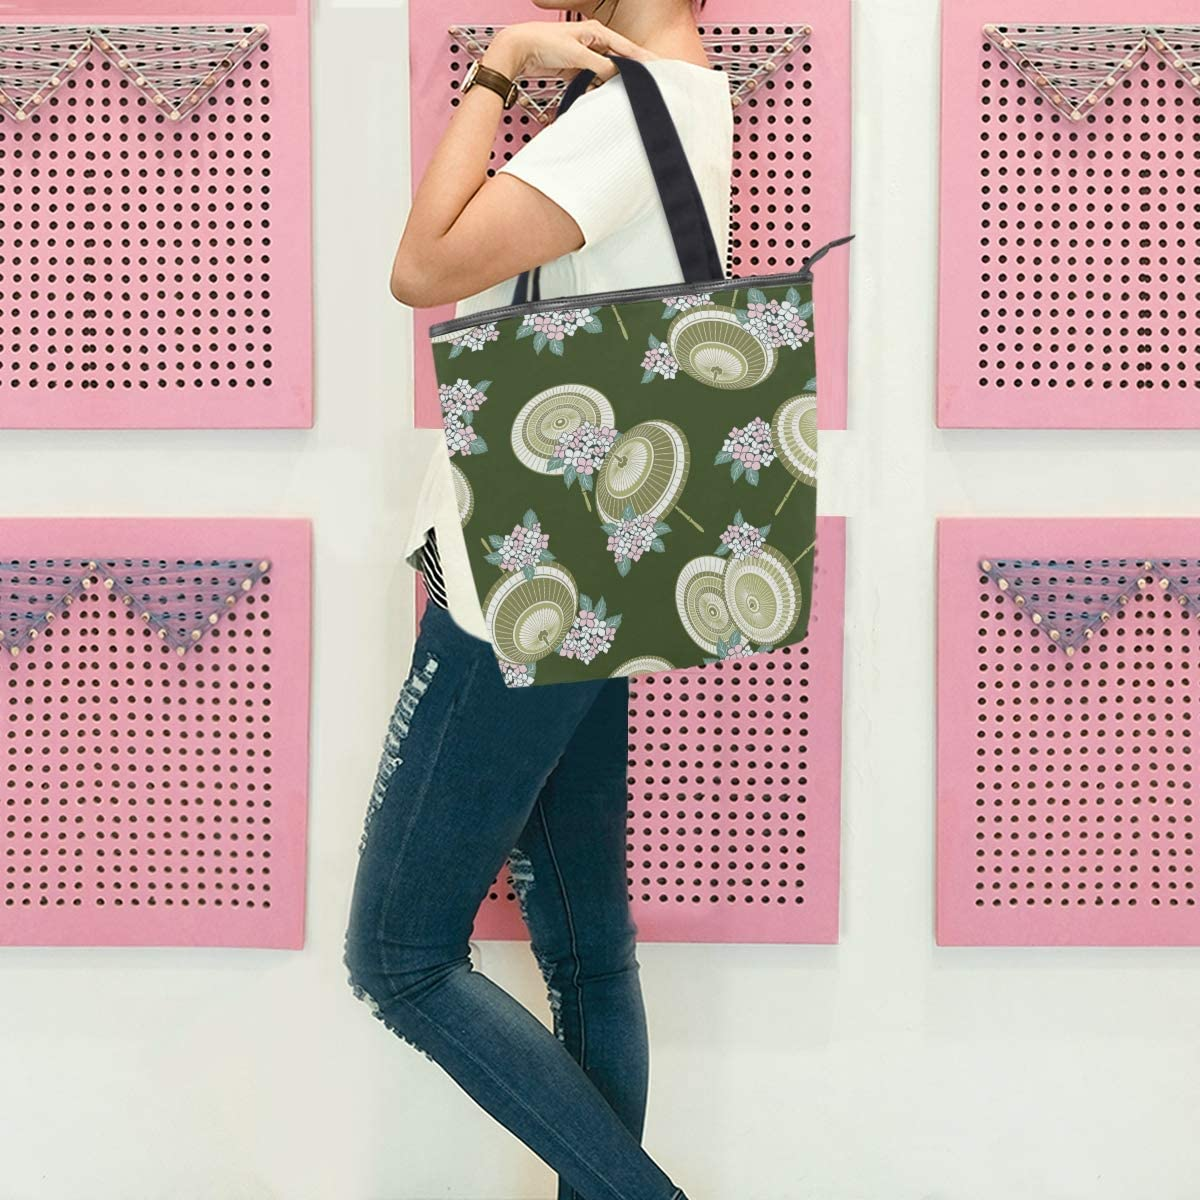 Flower Umbrella Green Womens Large Lightweight Tote Bag Shoulder Bag for Gym Hiking Picnic Travel Beach Shopping Tote Bags 11/×4/×13.6 in